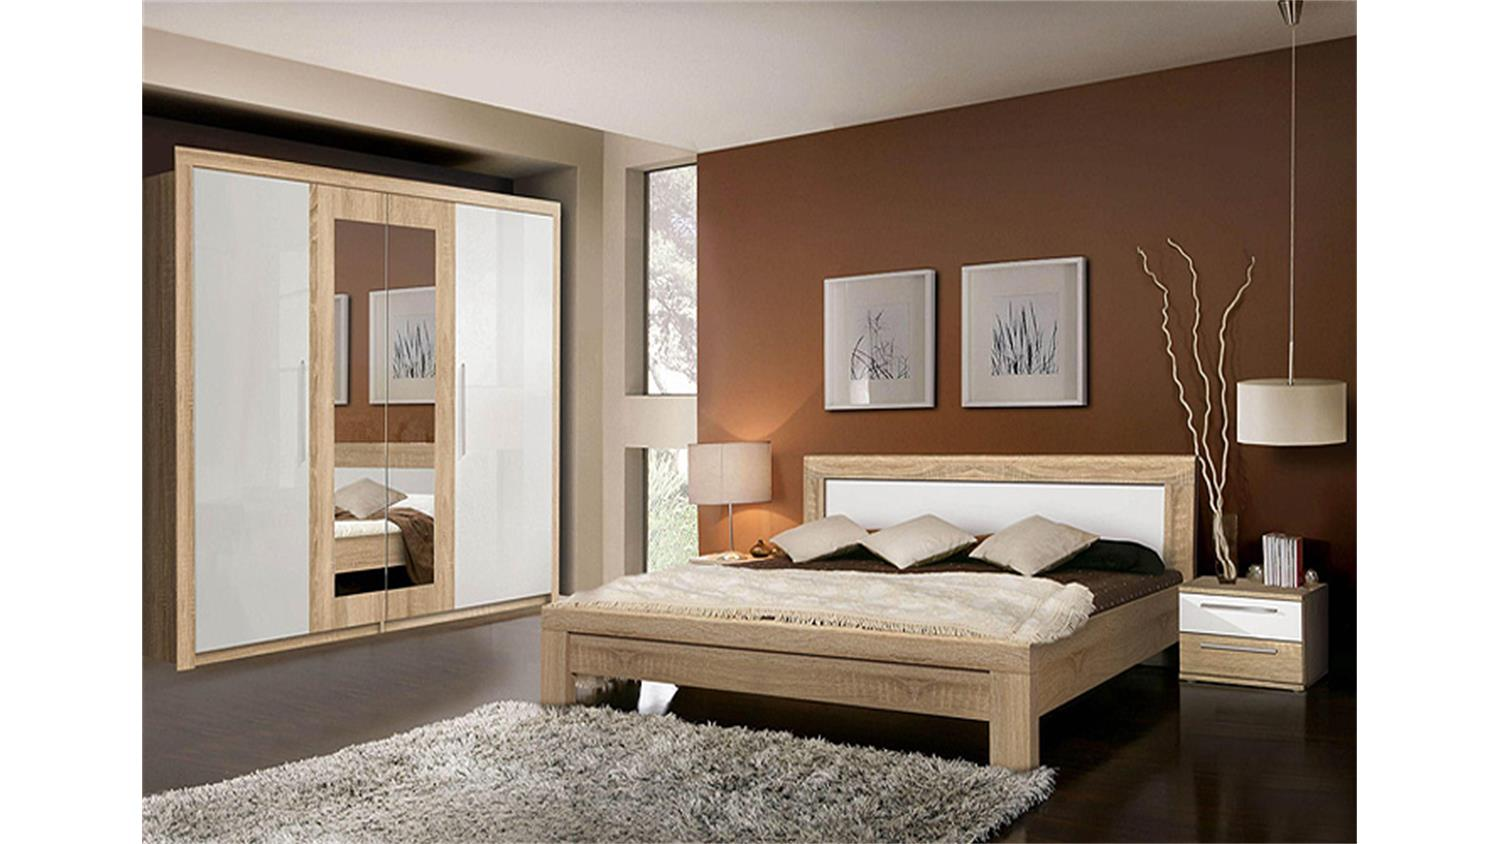 schlafzimmer dekorieren. Black Bedroom Furniture Sets. Home Design Ideas